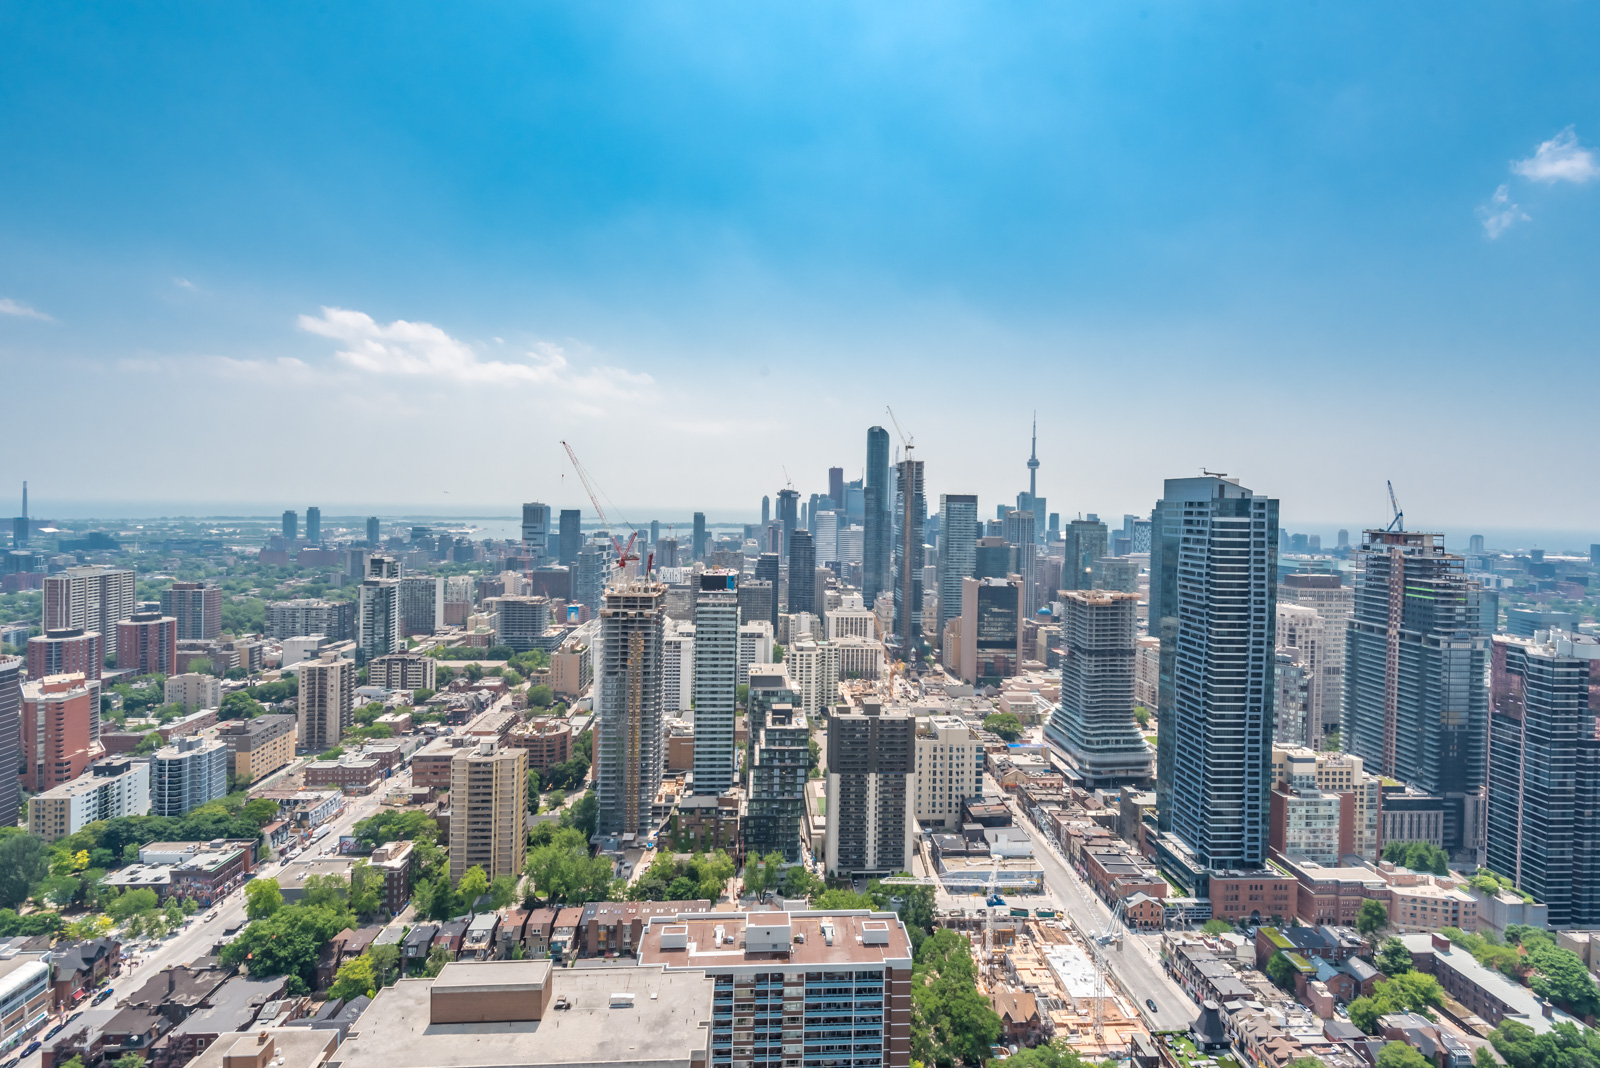 Sky view of downtown Toronto and construction.